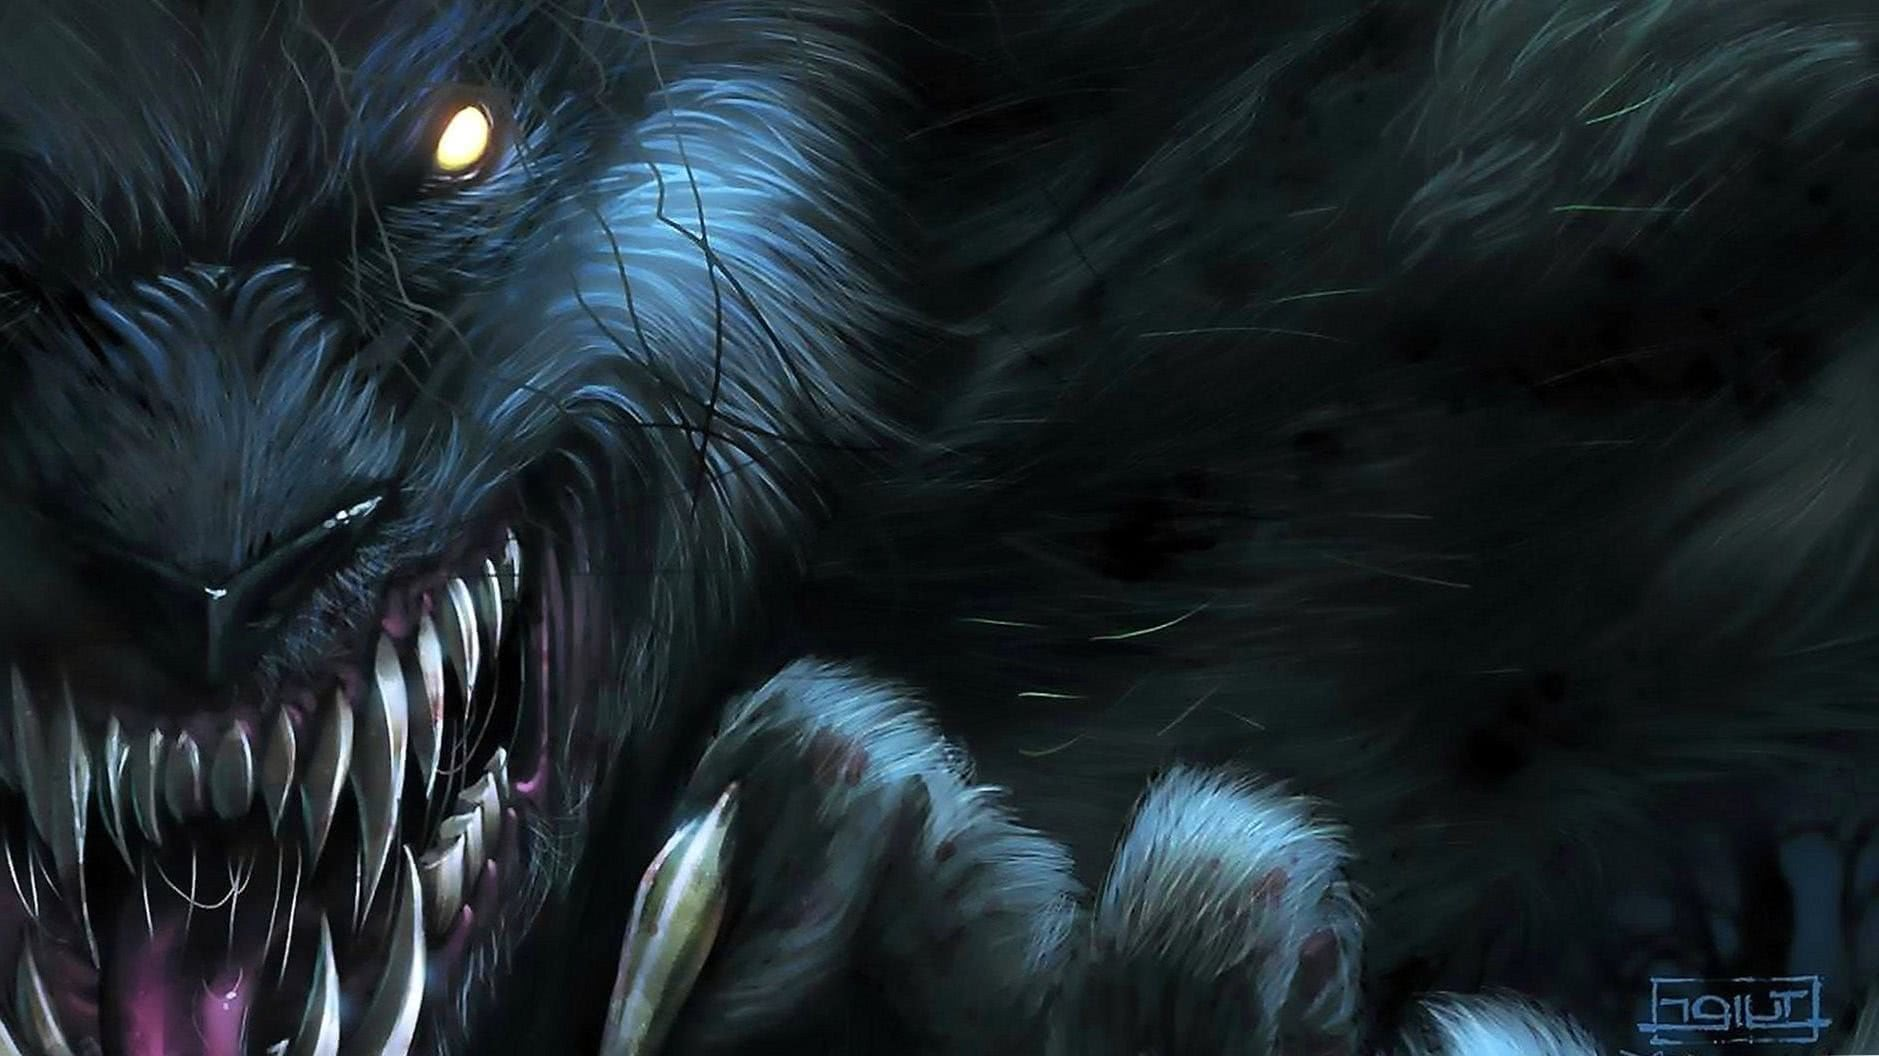 Wallpaper Of A Werewolf